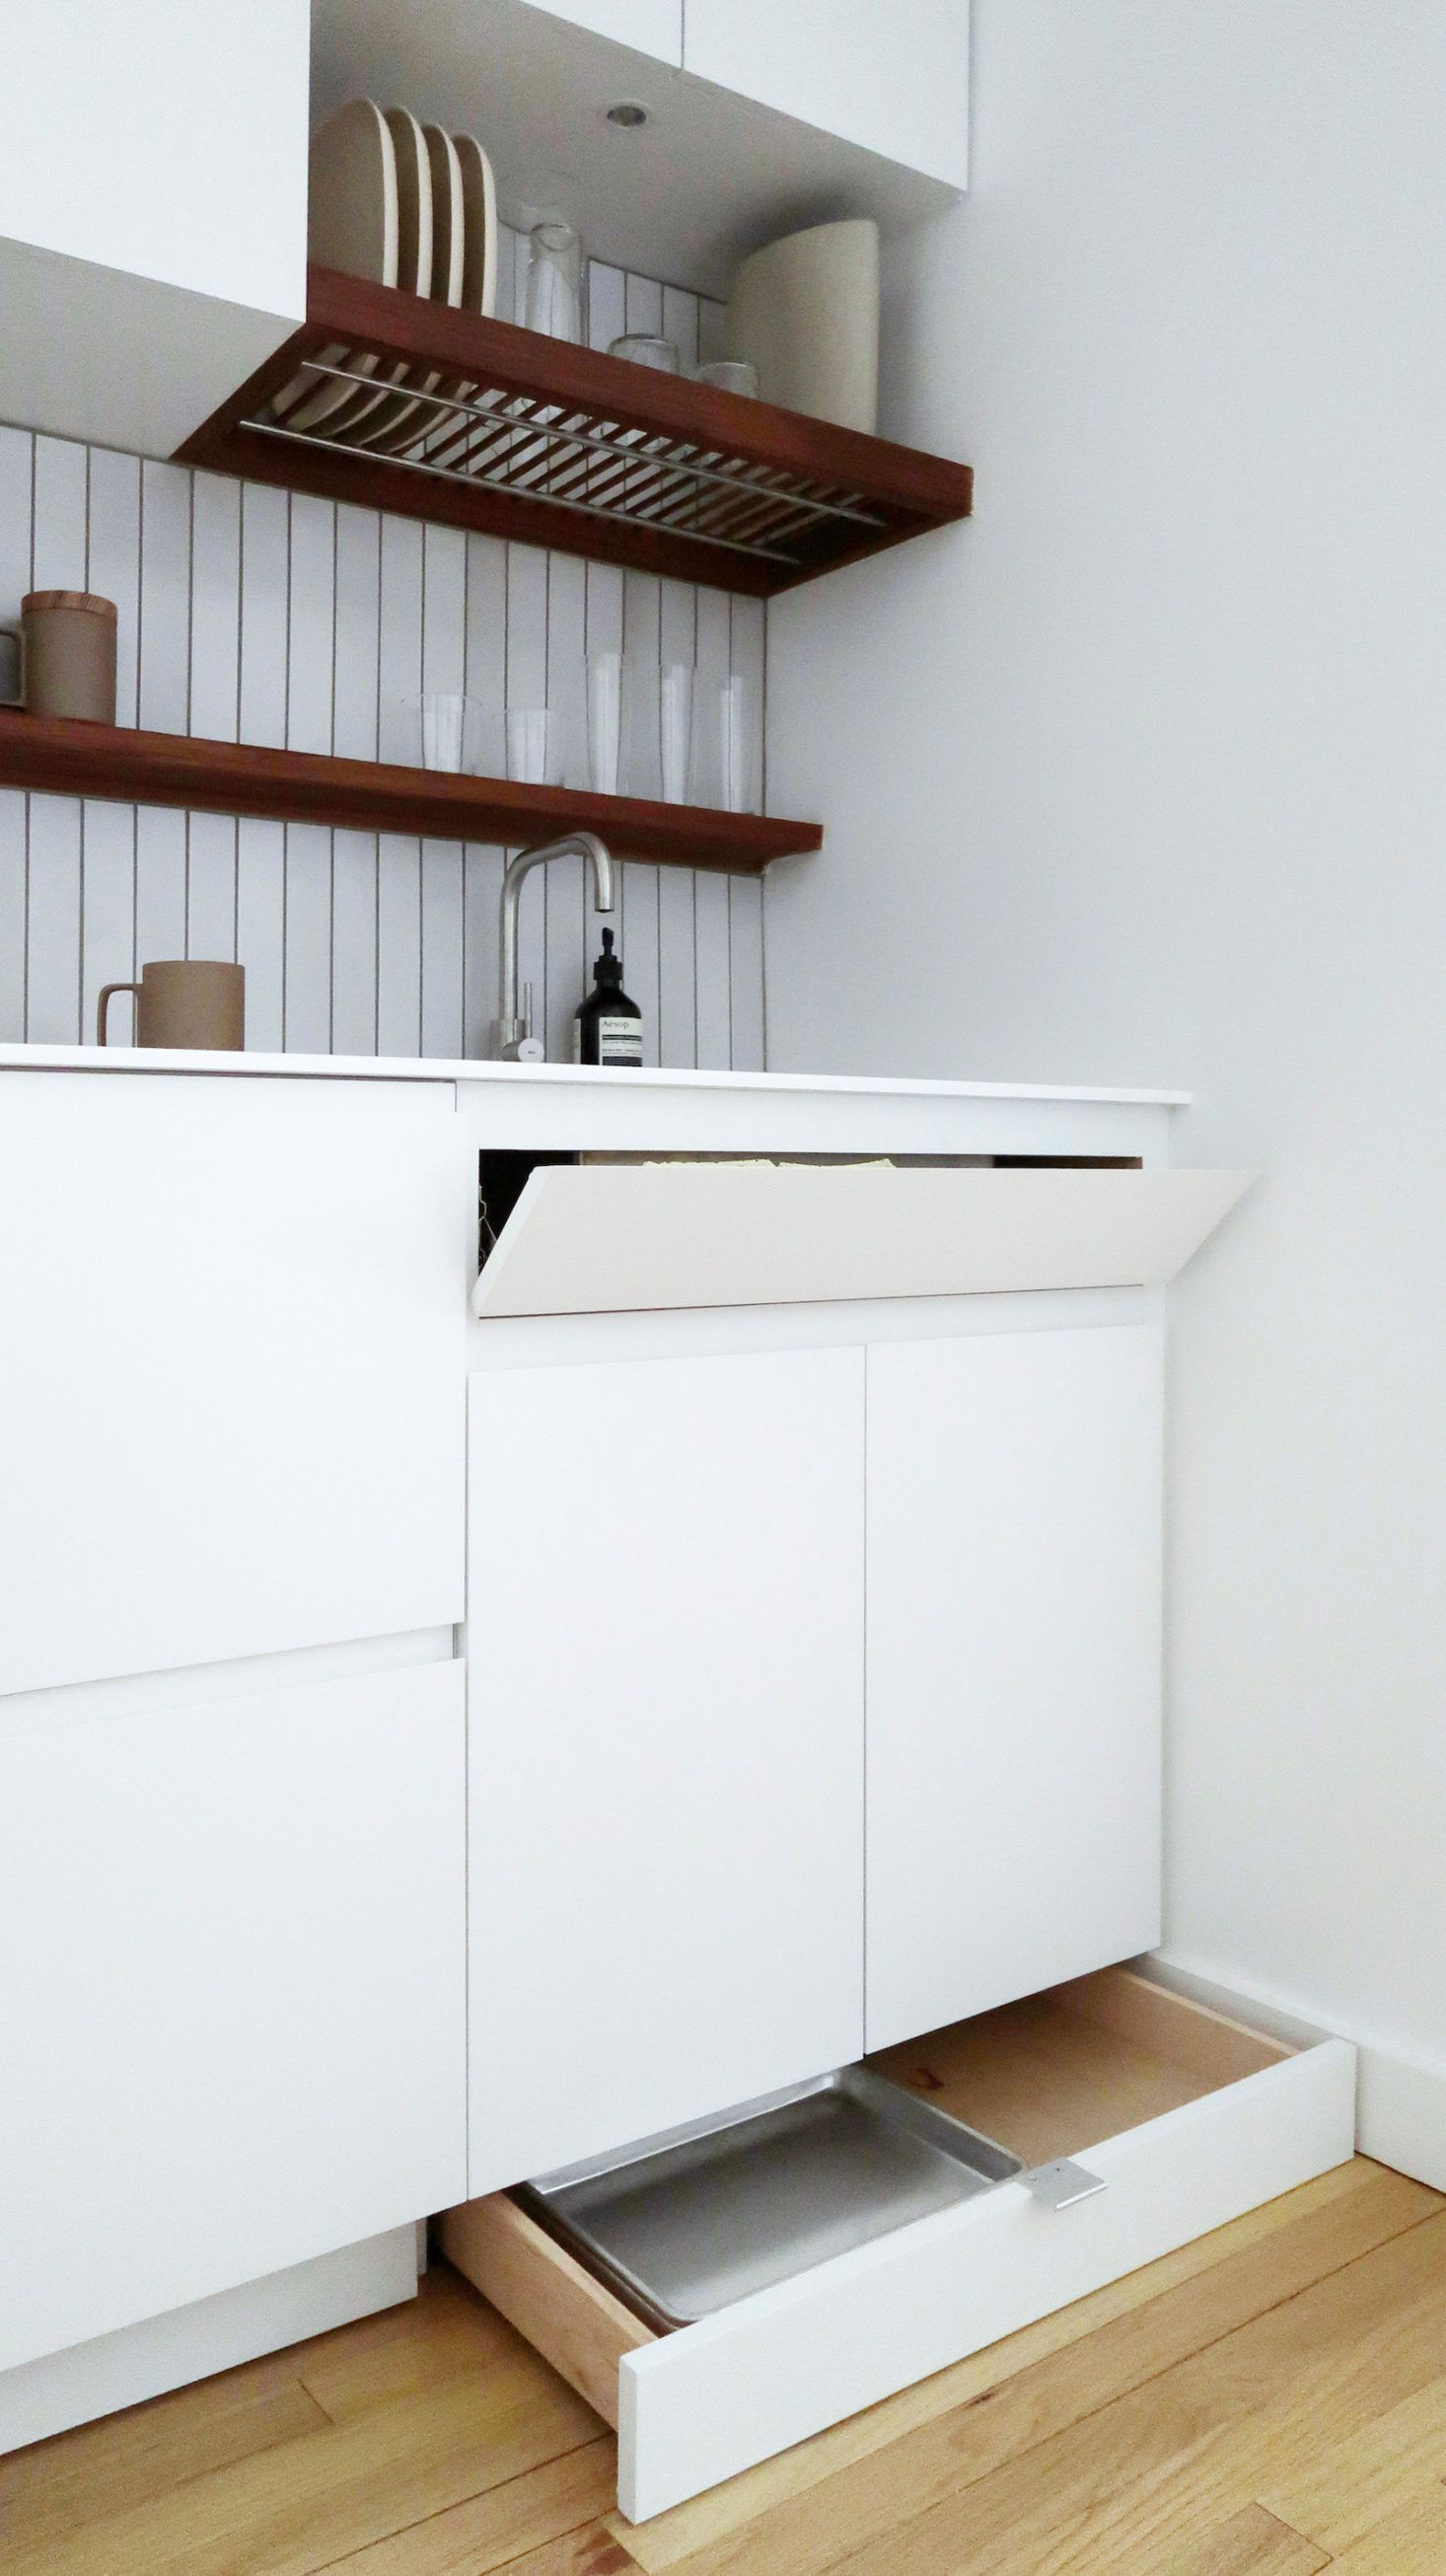 The Cabinet Fronts Are Flat Mdf Panels With A Sprayed White Lacquer Finish The Toe Kick Drawers Have S Installing Kitchen Cabinets Kitchen Plans Tiny Kitchen